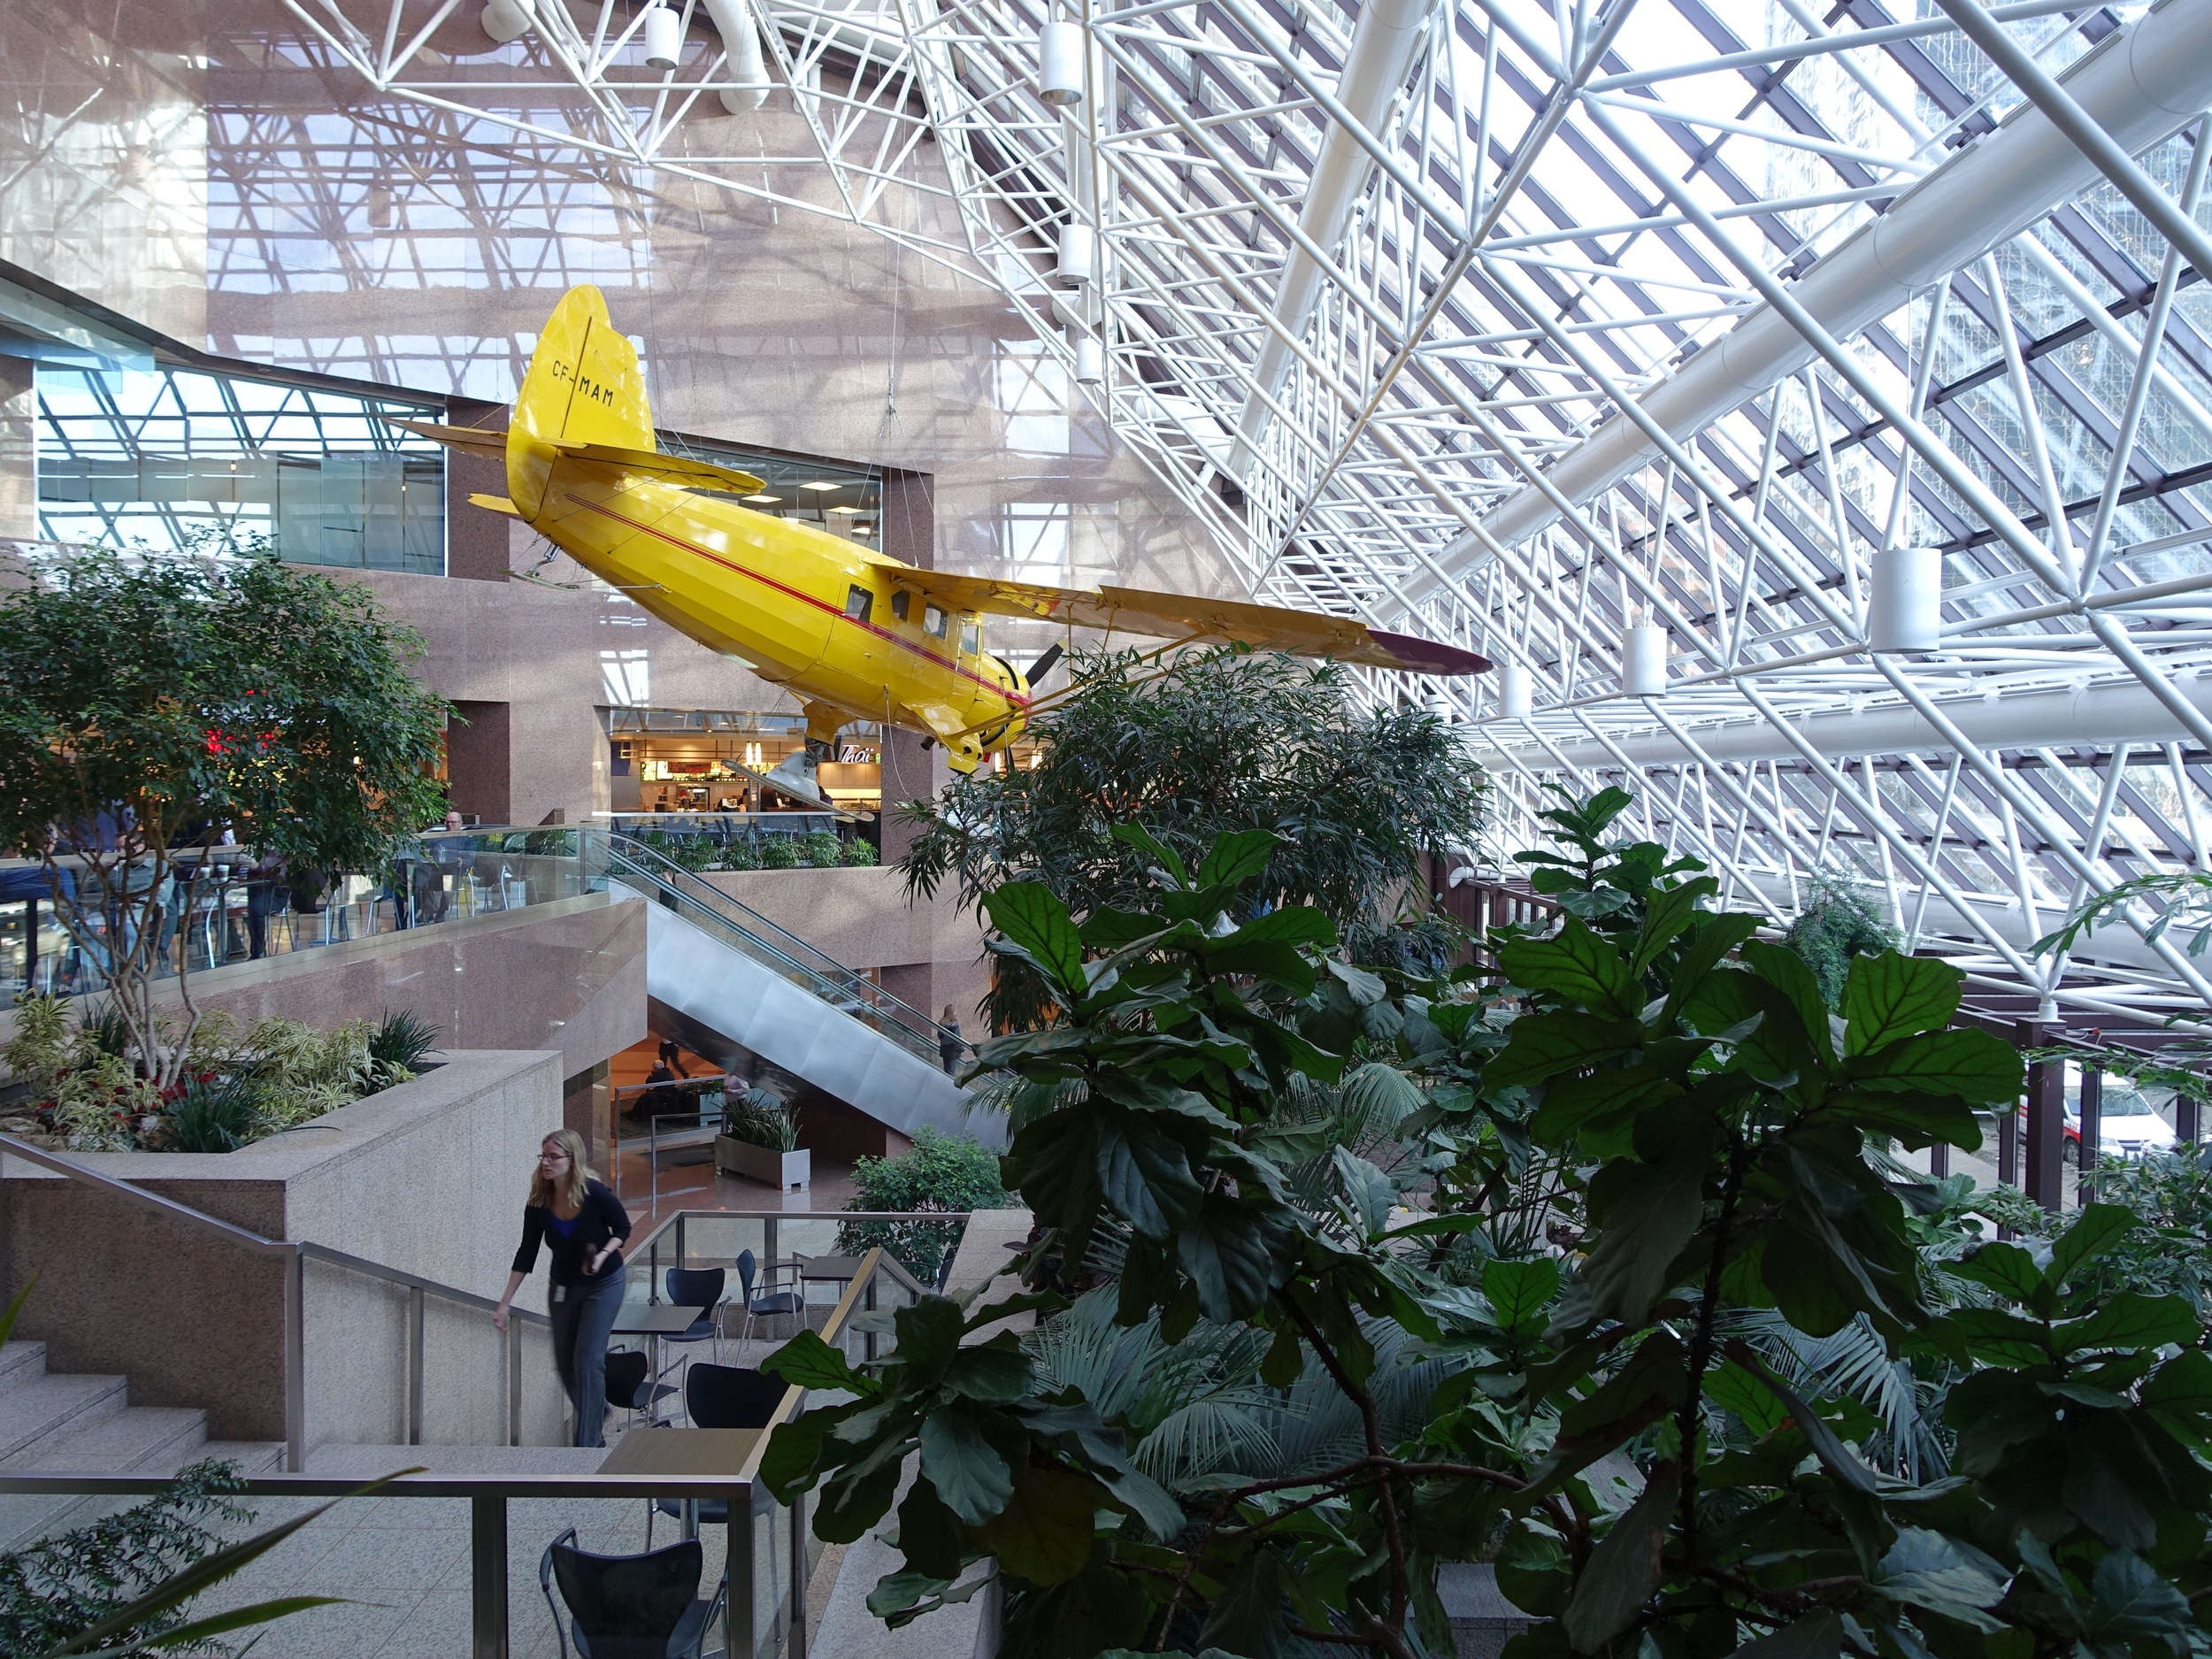 Bush plane suspended from the ceiling of Suncor Centre.